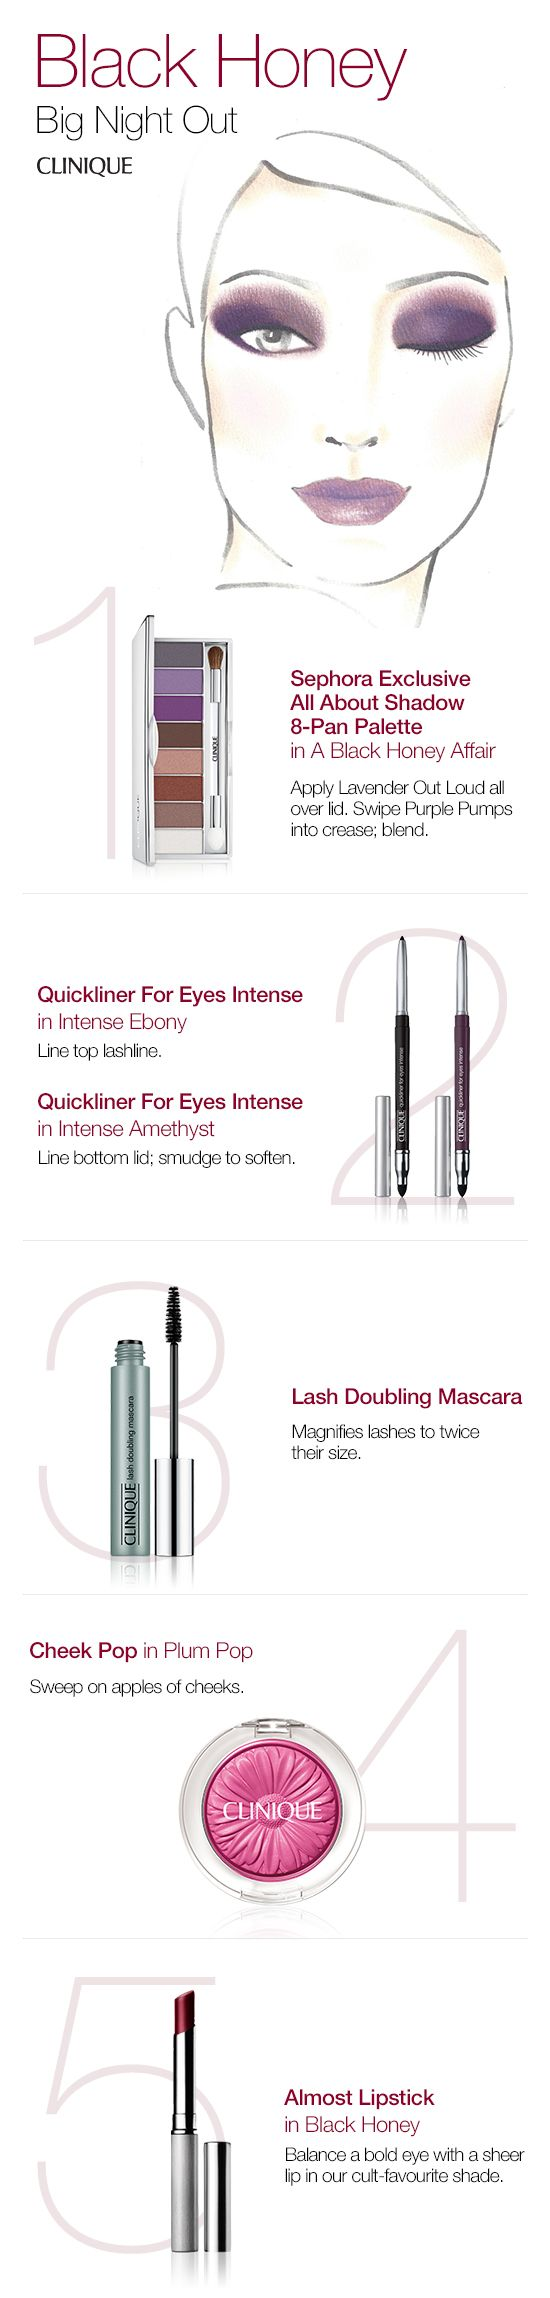 Everything you need to create a dramatic eye look for a big night out.  1. All About Shadow 8-Pan Palette in A Black Honey Affair 2. Quickliner For Eyes Intense in Intense Ebony and Intense Amethyst 3. Lash Doubling Mascara 4. Cheek Pop in Plum Pop 5. Almost Lipstick in Black Honey  #Clinique #Makeup #Beauty #BlackHoney #Eyeshadow #Blush #Lipstick #Mascara #Eyelienr